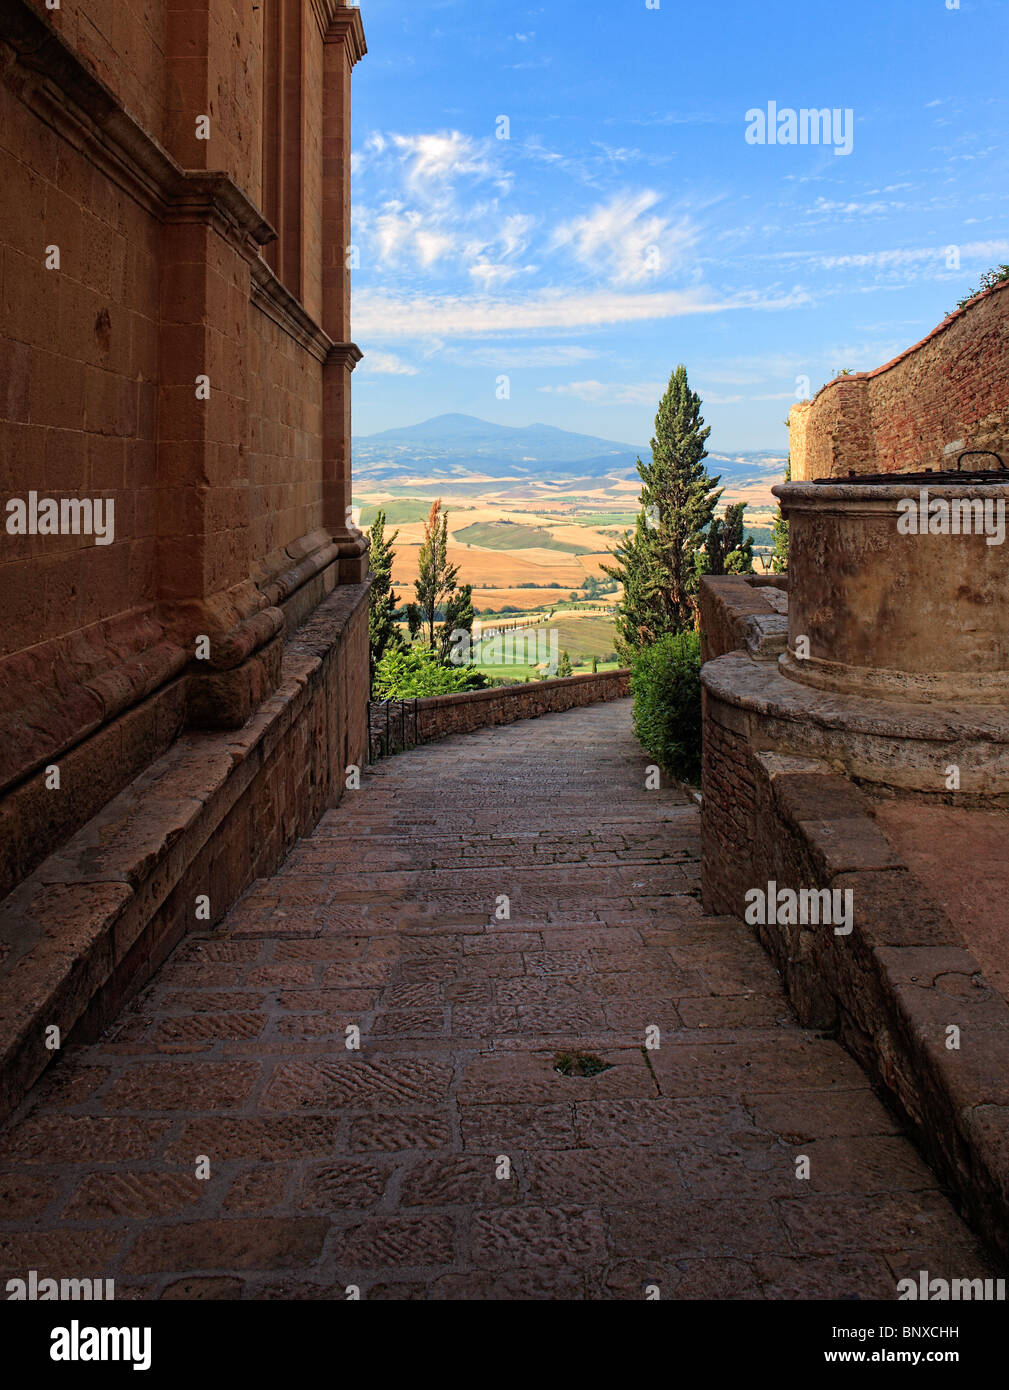 Walkway in Pienza provides stunning views of the surrounding Tuscan landscape - Stock Image